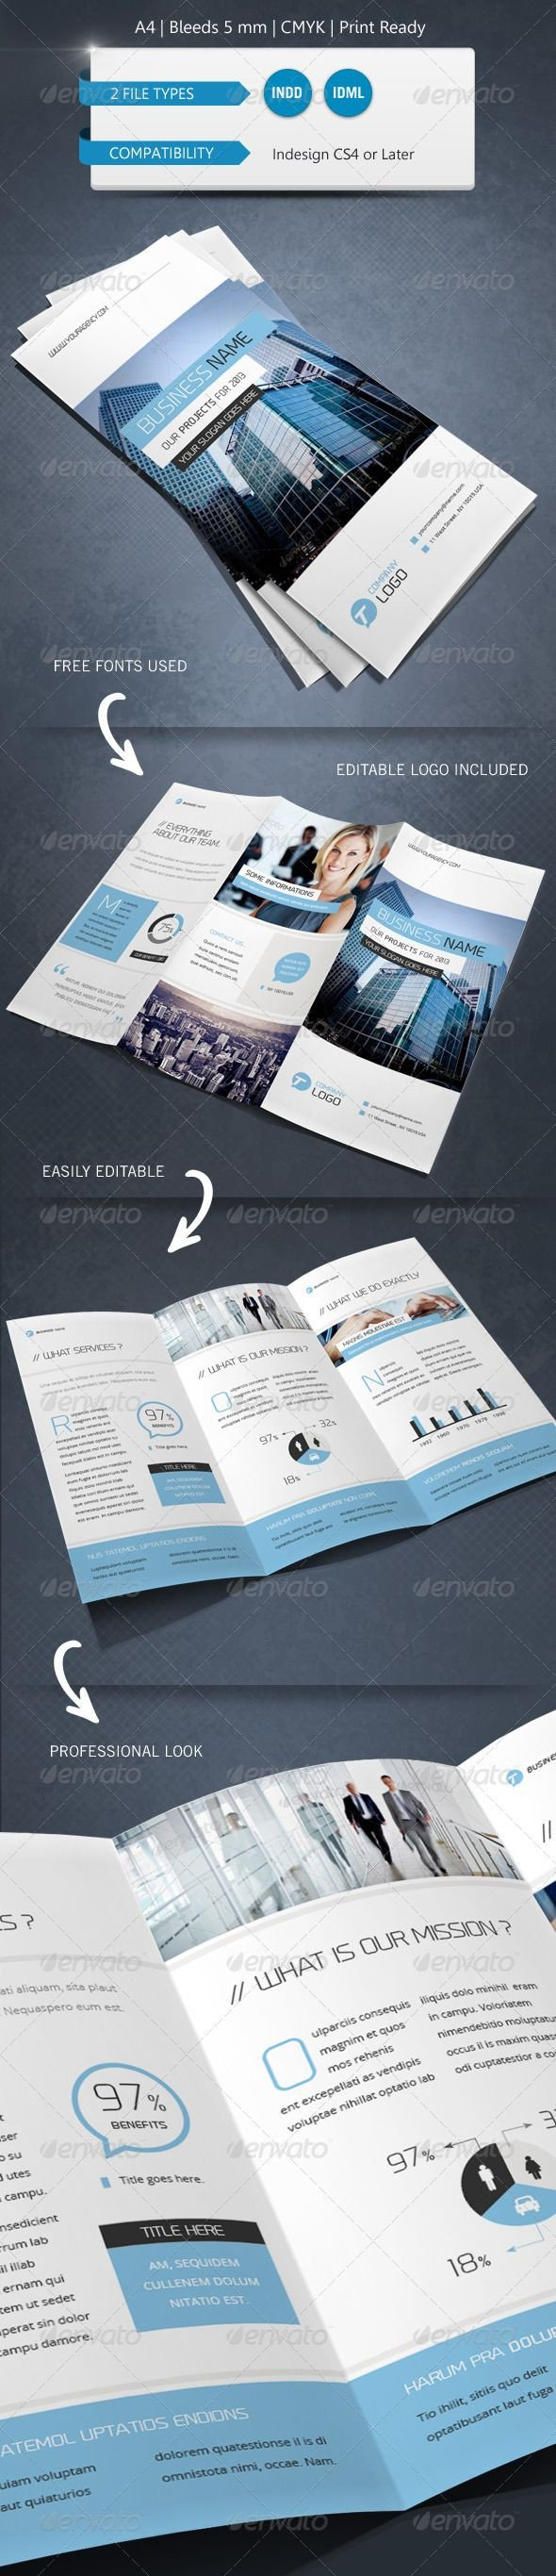 Indesign Trifold Brochure Templates Corporate Indesign Trifold Brochure Template